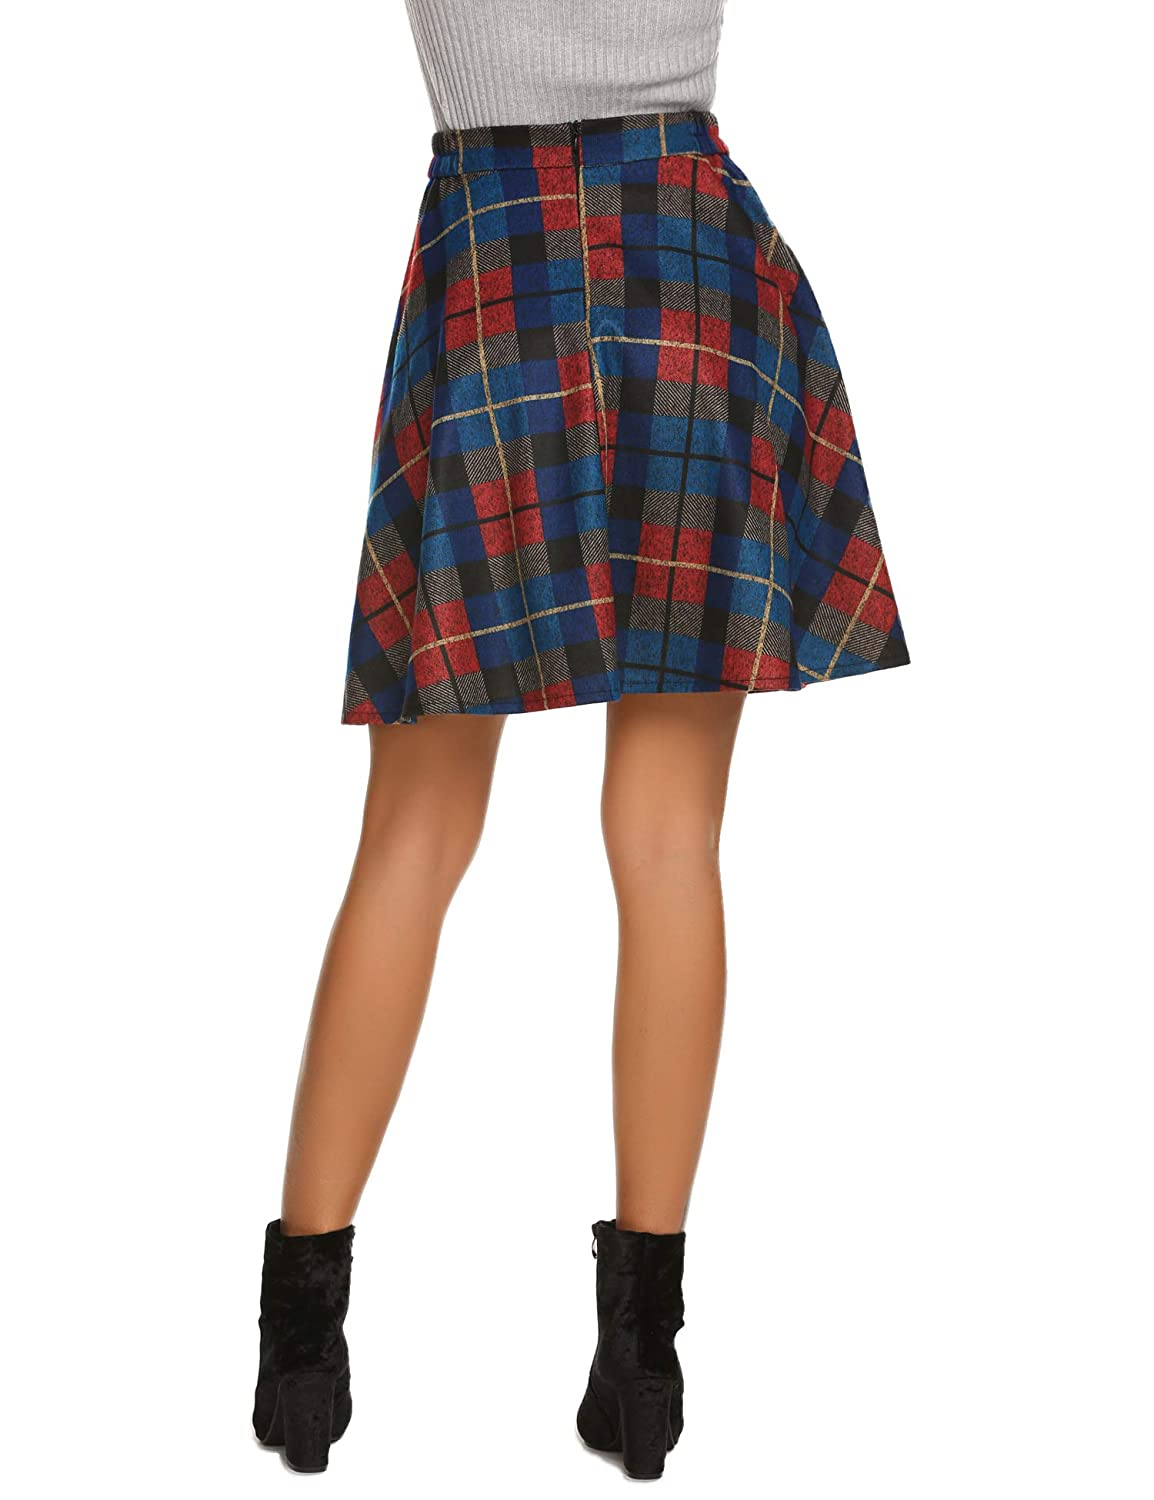 b5a7a4320c Hotouch Women's Plaid Flared Skirt A-Line High Elastic Tartan Pleated Winter  Warm Wool Skirts Short at Amazon Women's Clothing store: